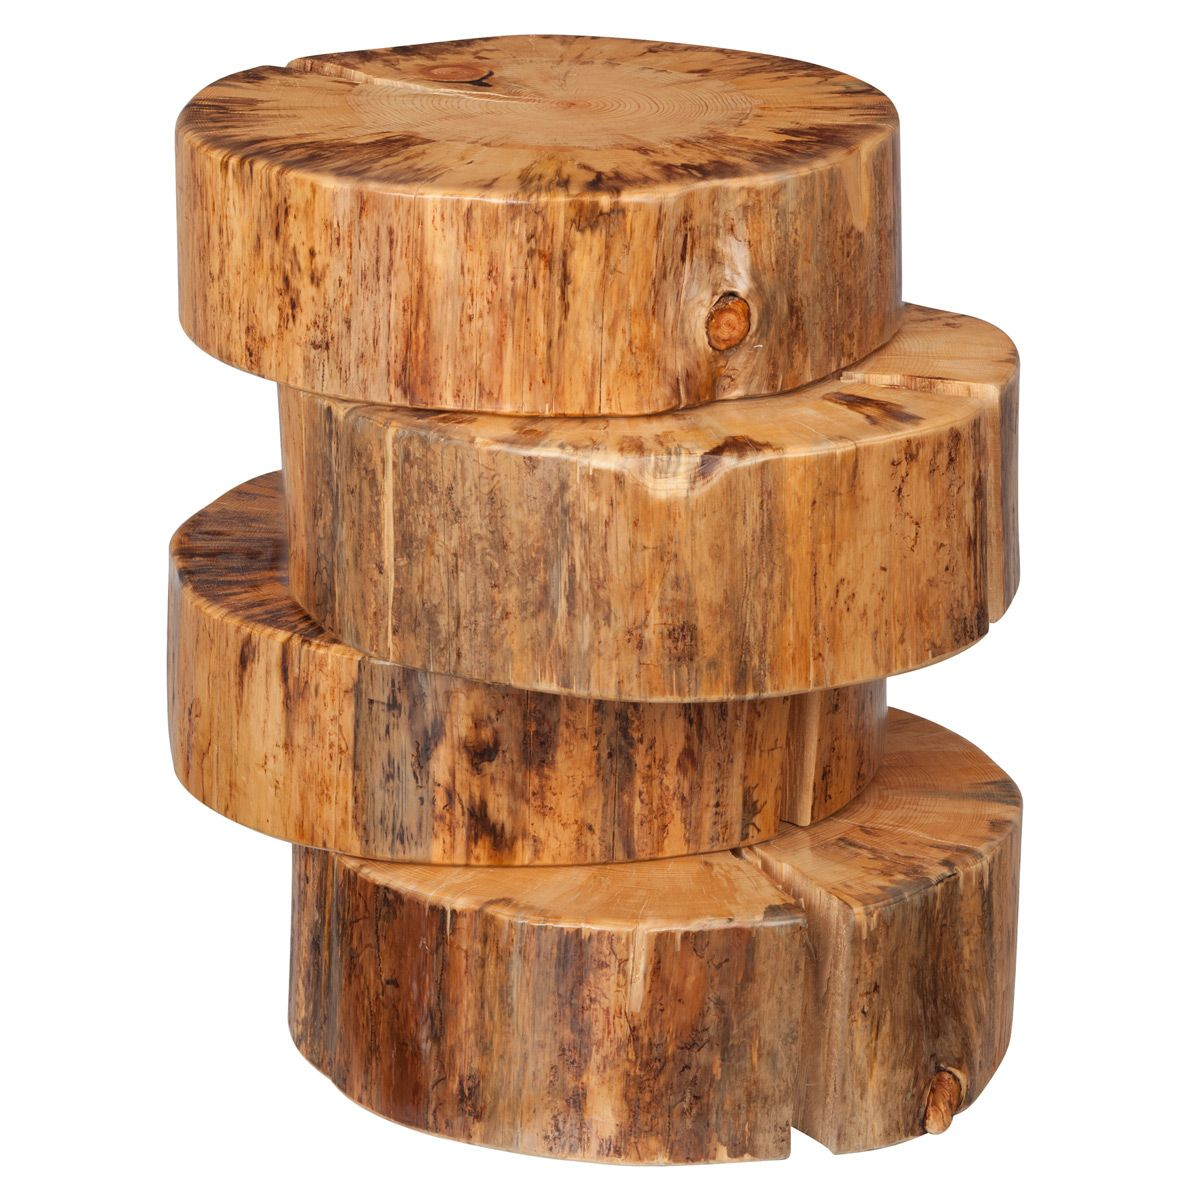 Aged pine step end table with images rustic end tables